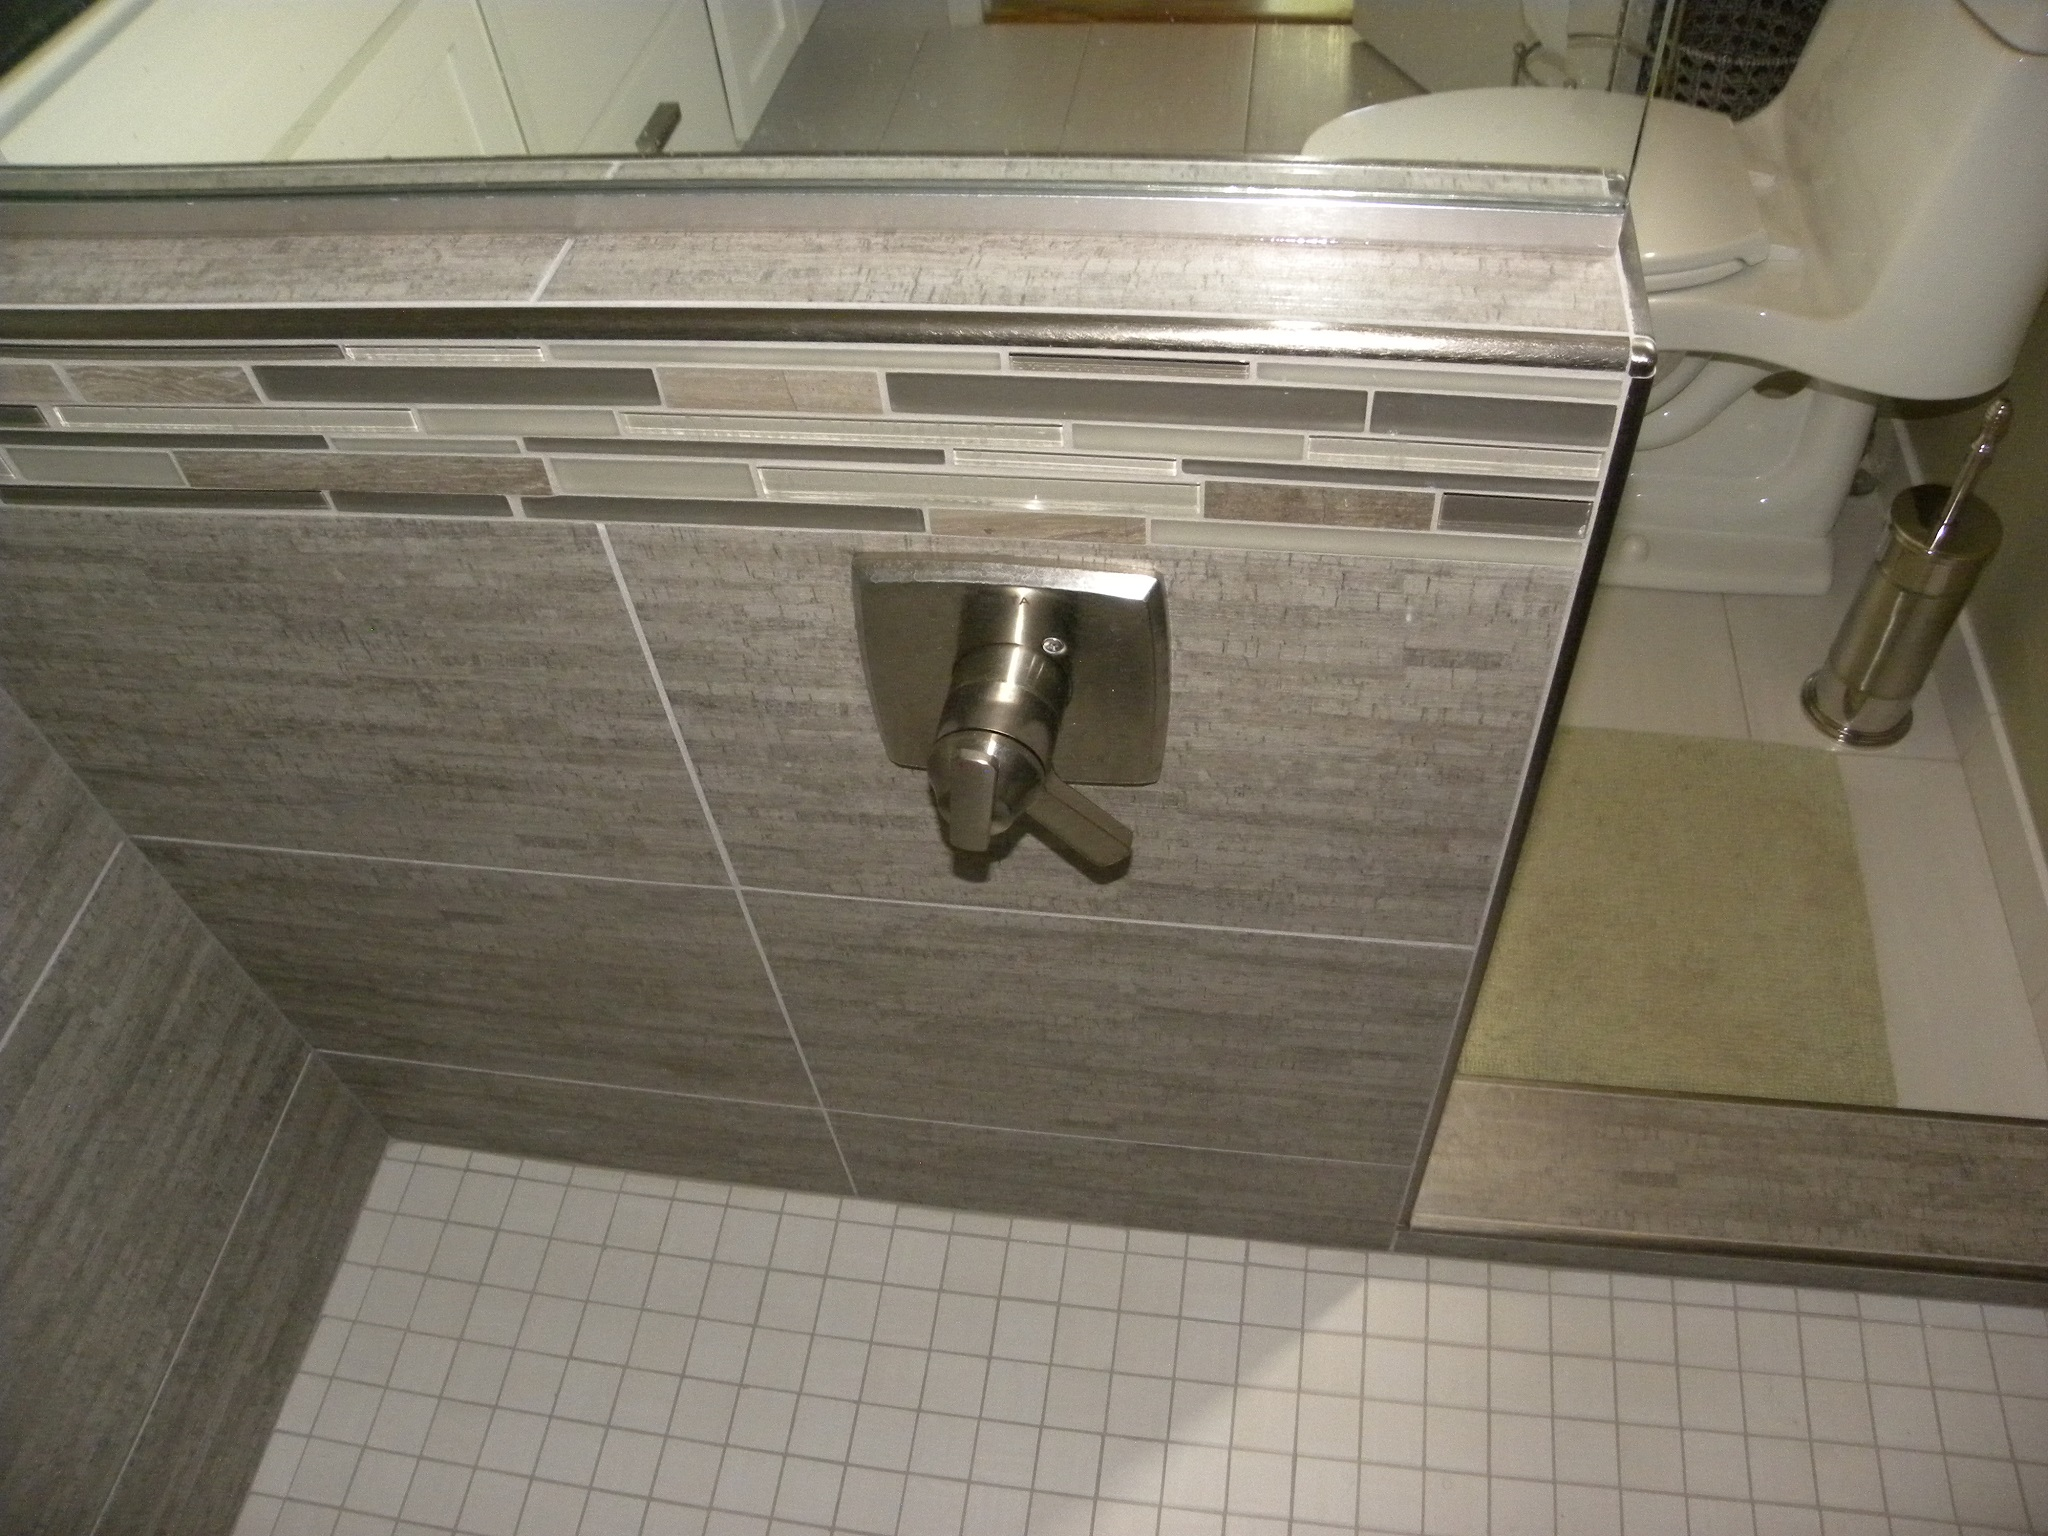 A custom built shower with gray tile and a specially designed shower handle